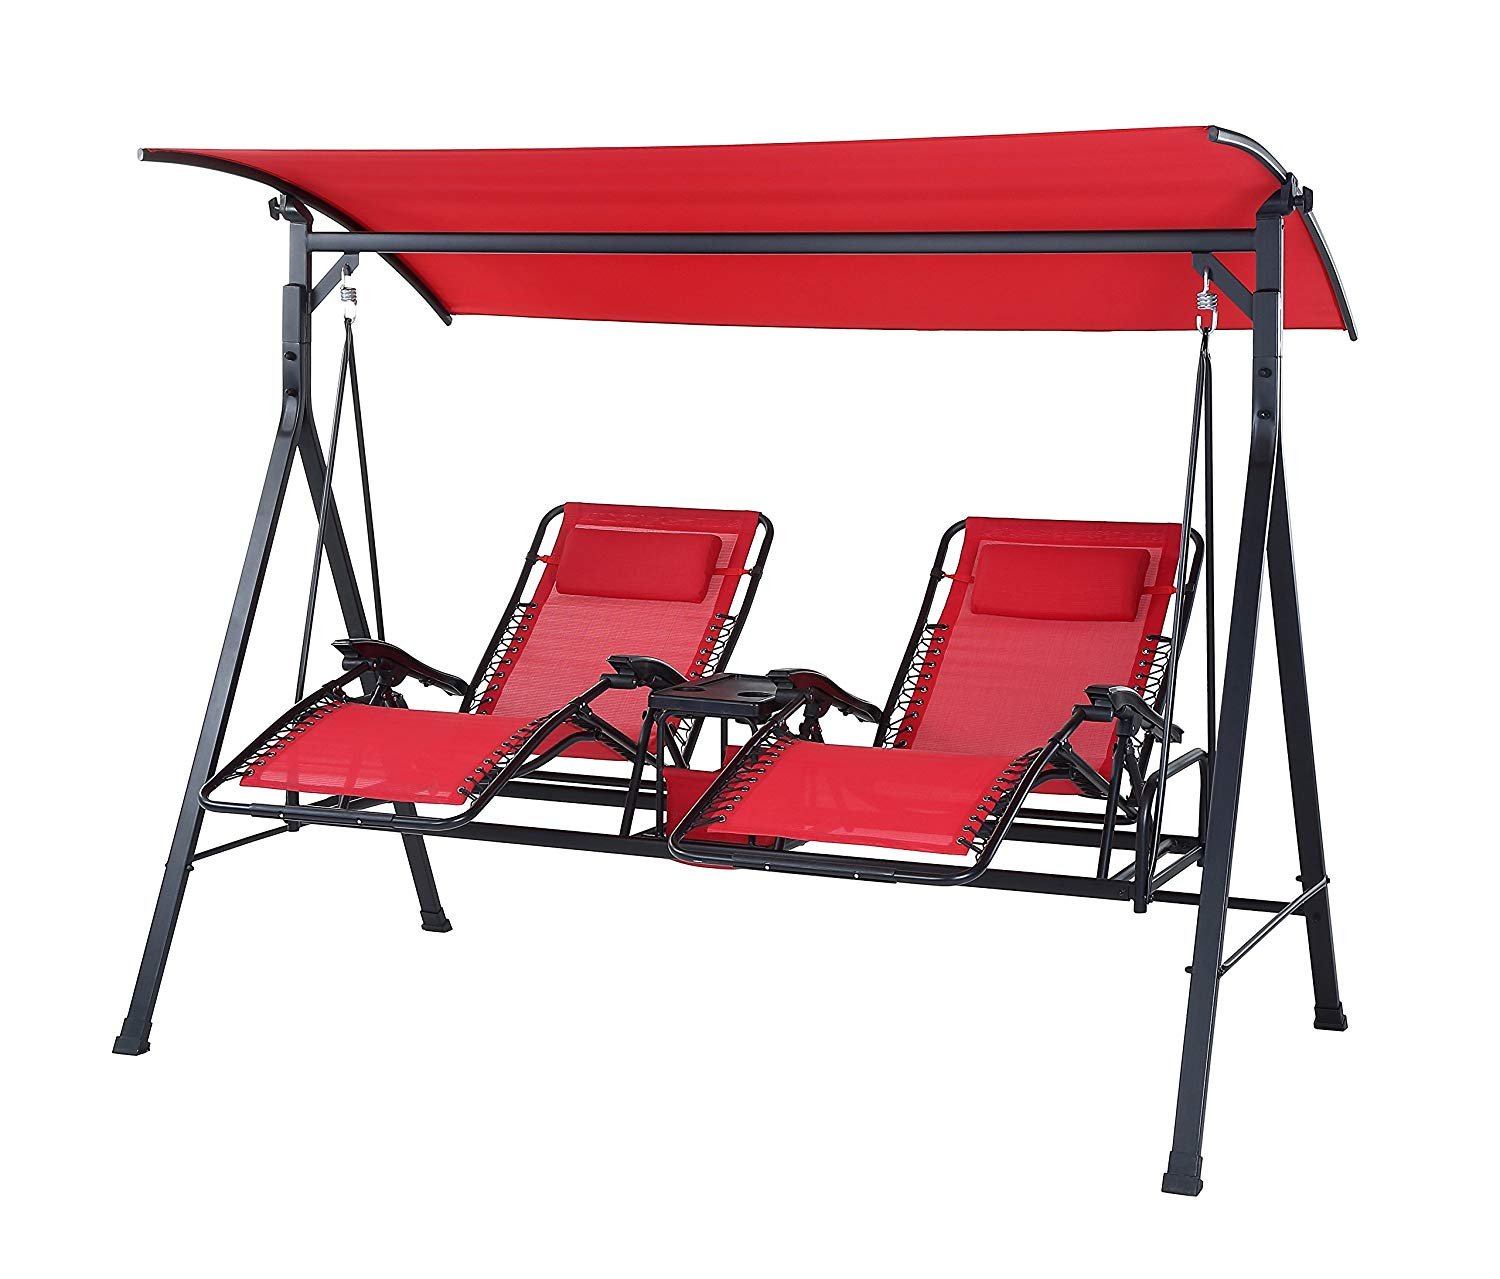 Best Outdoor Reclining Zero Gravity Swing [2020 Update Intended For 3 Person Red With Brown Powder Coated Frame Steel Outdoor Swings (View 19 of 25)